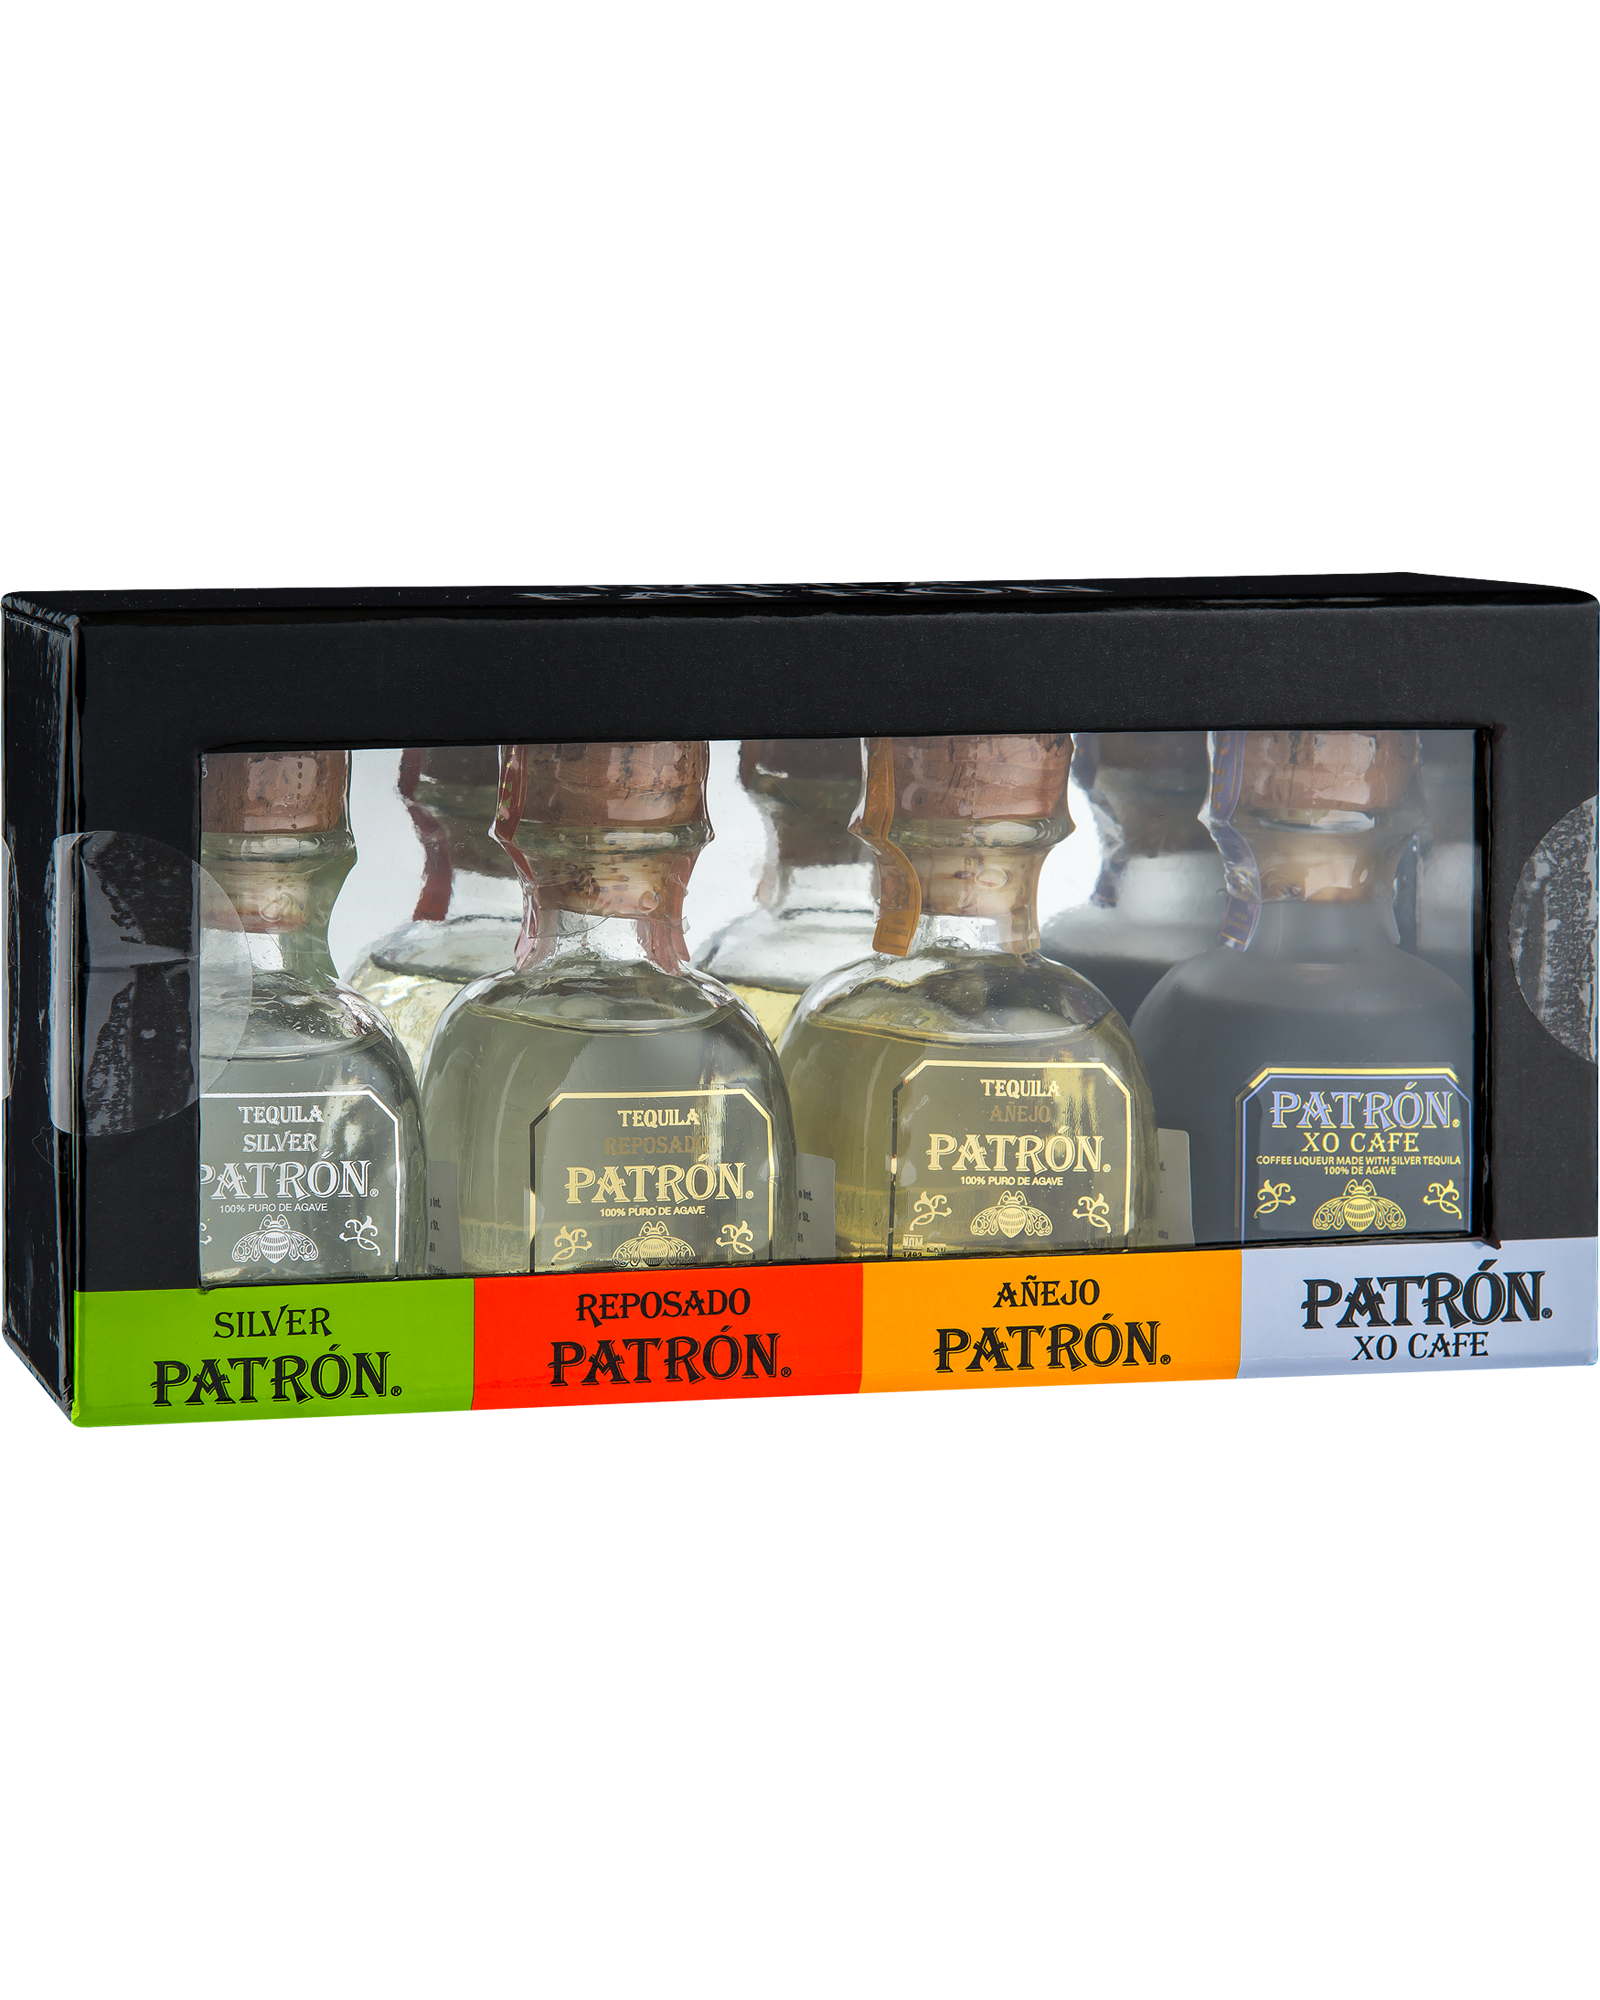 This Patron gift pack contains 4 x 50 ml bottles of various Patron Tequila making it